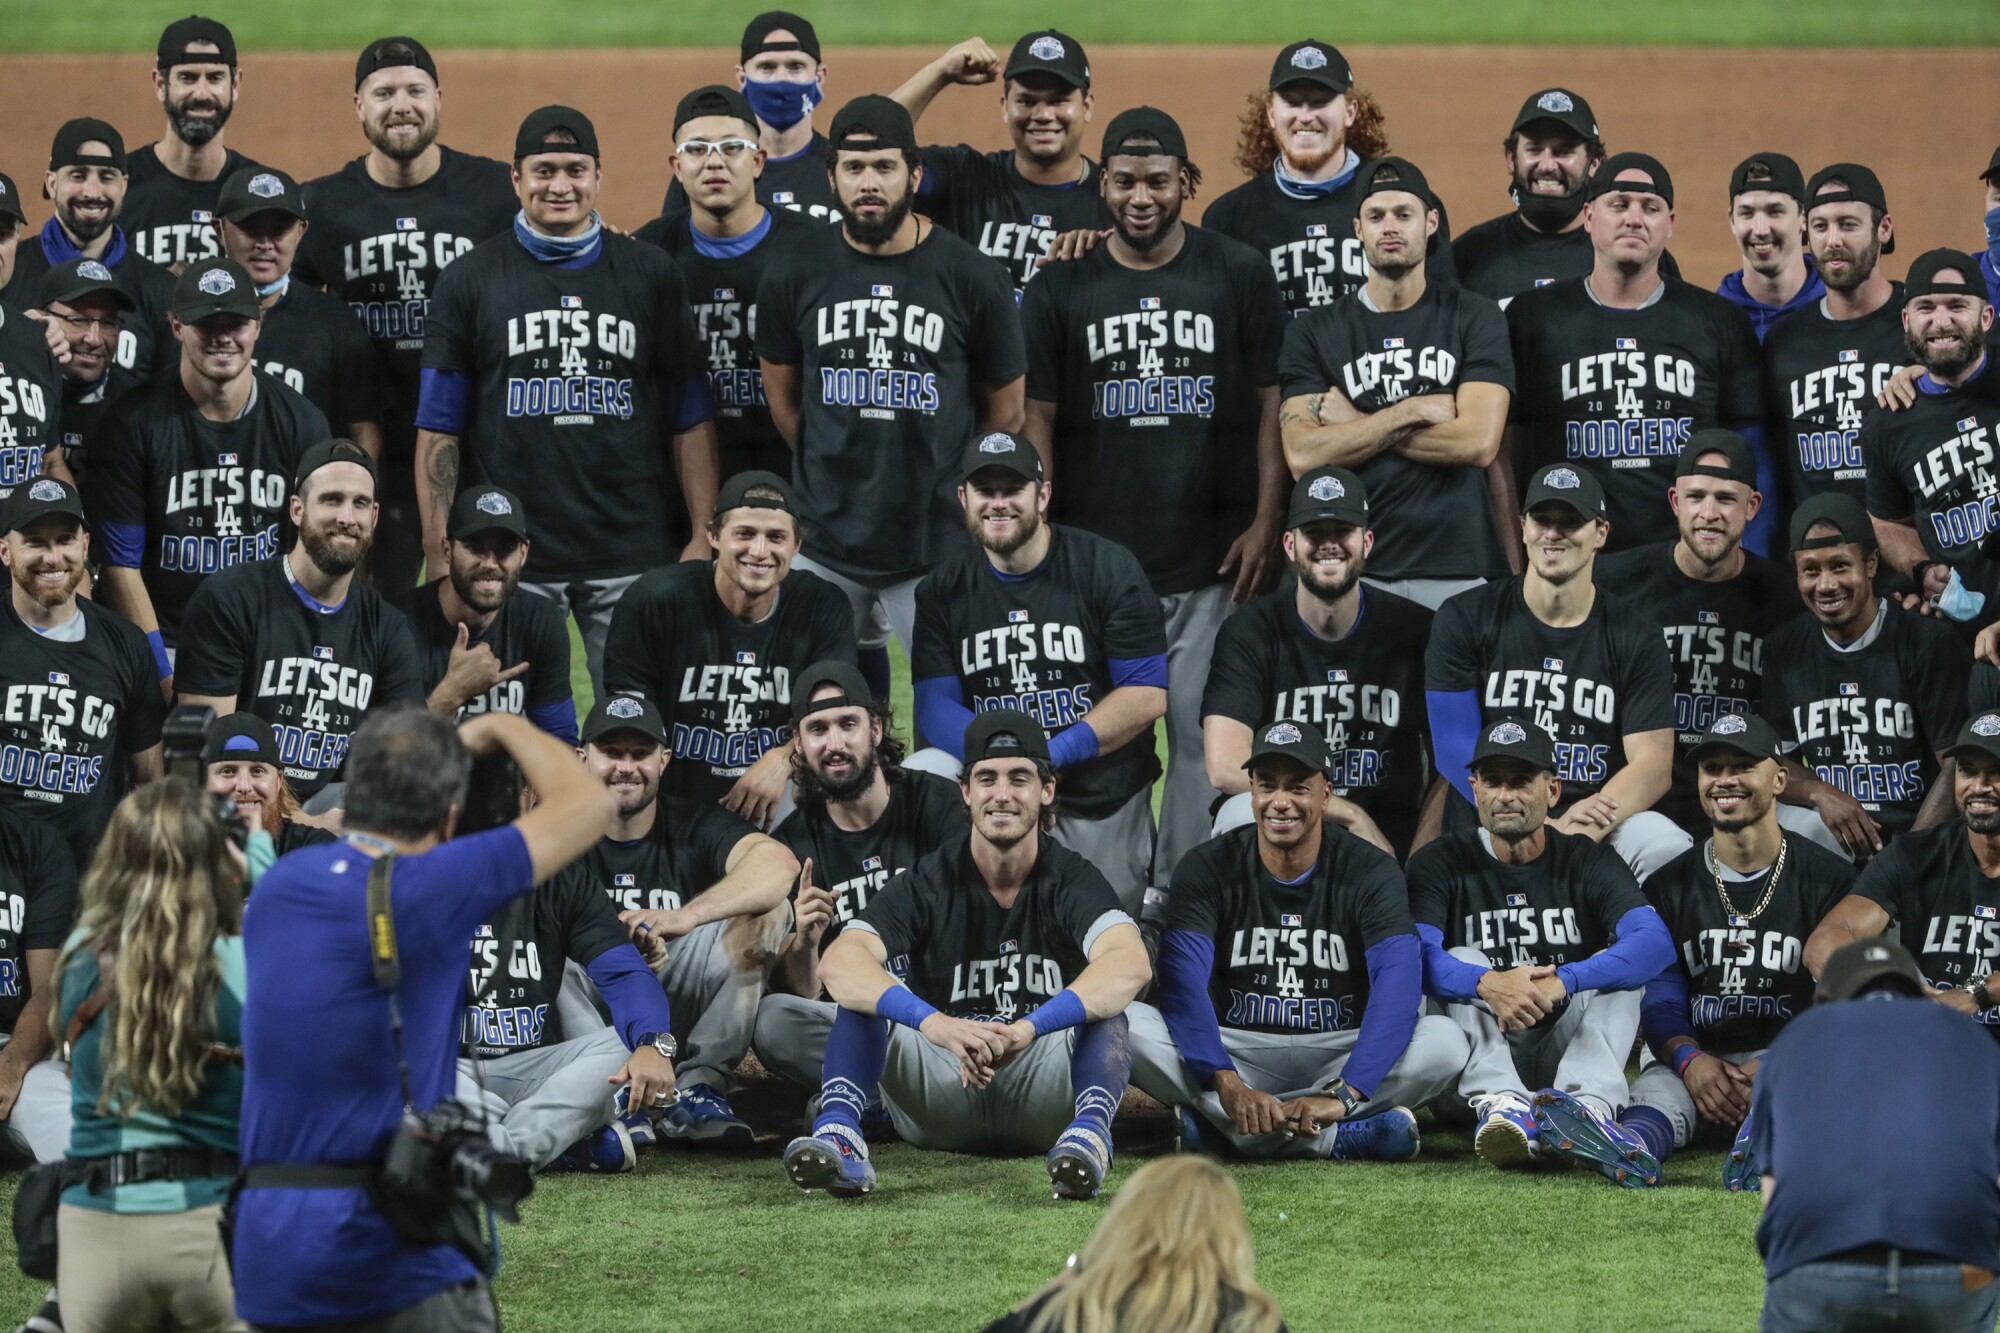 Dodgers players celebrate at Globe Life Field in Arlington, Texas, after sweeping the San Diego Padres.